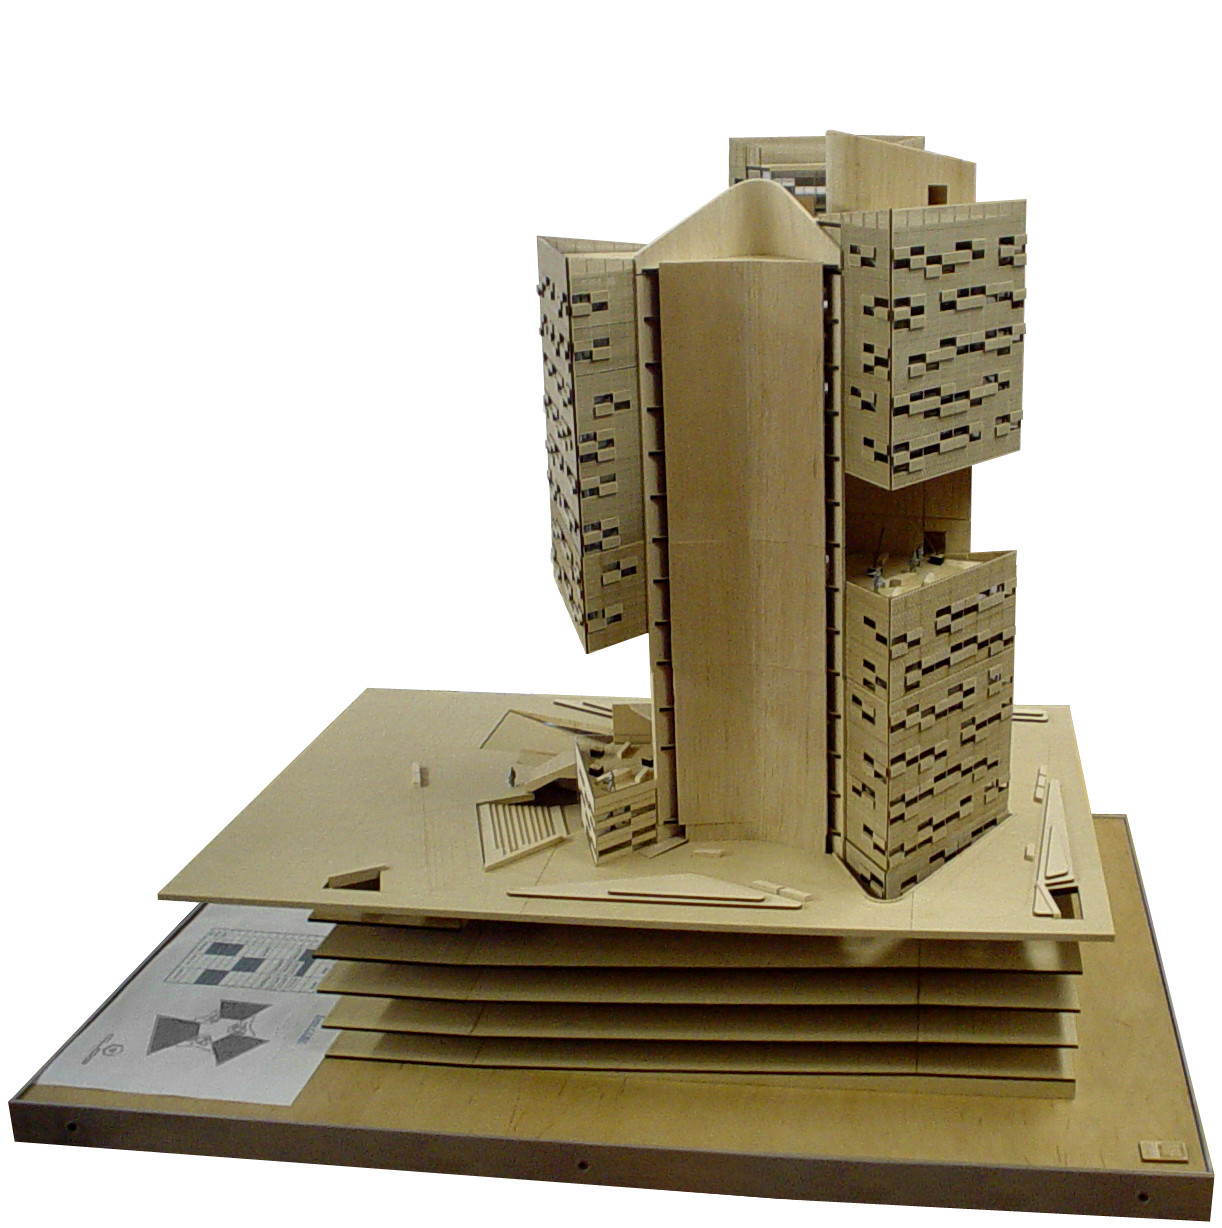 Carme Pinos. Cube Tower, Guadalajara, Mexico, Scale model 1:100. 2002-2005